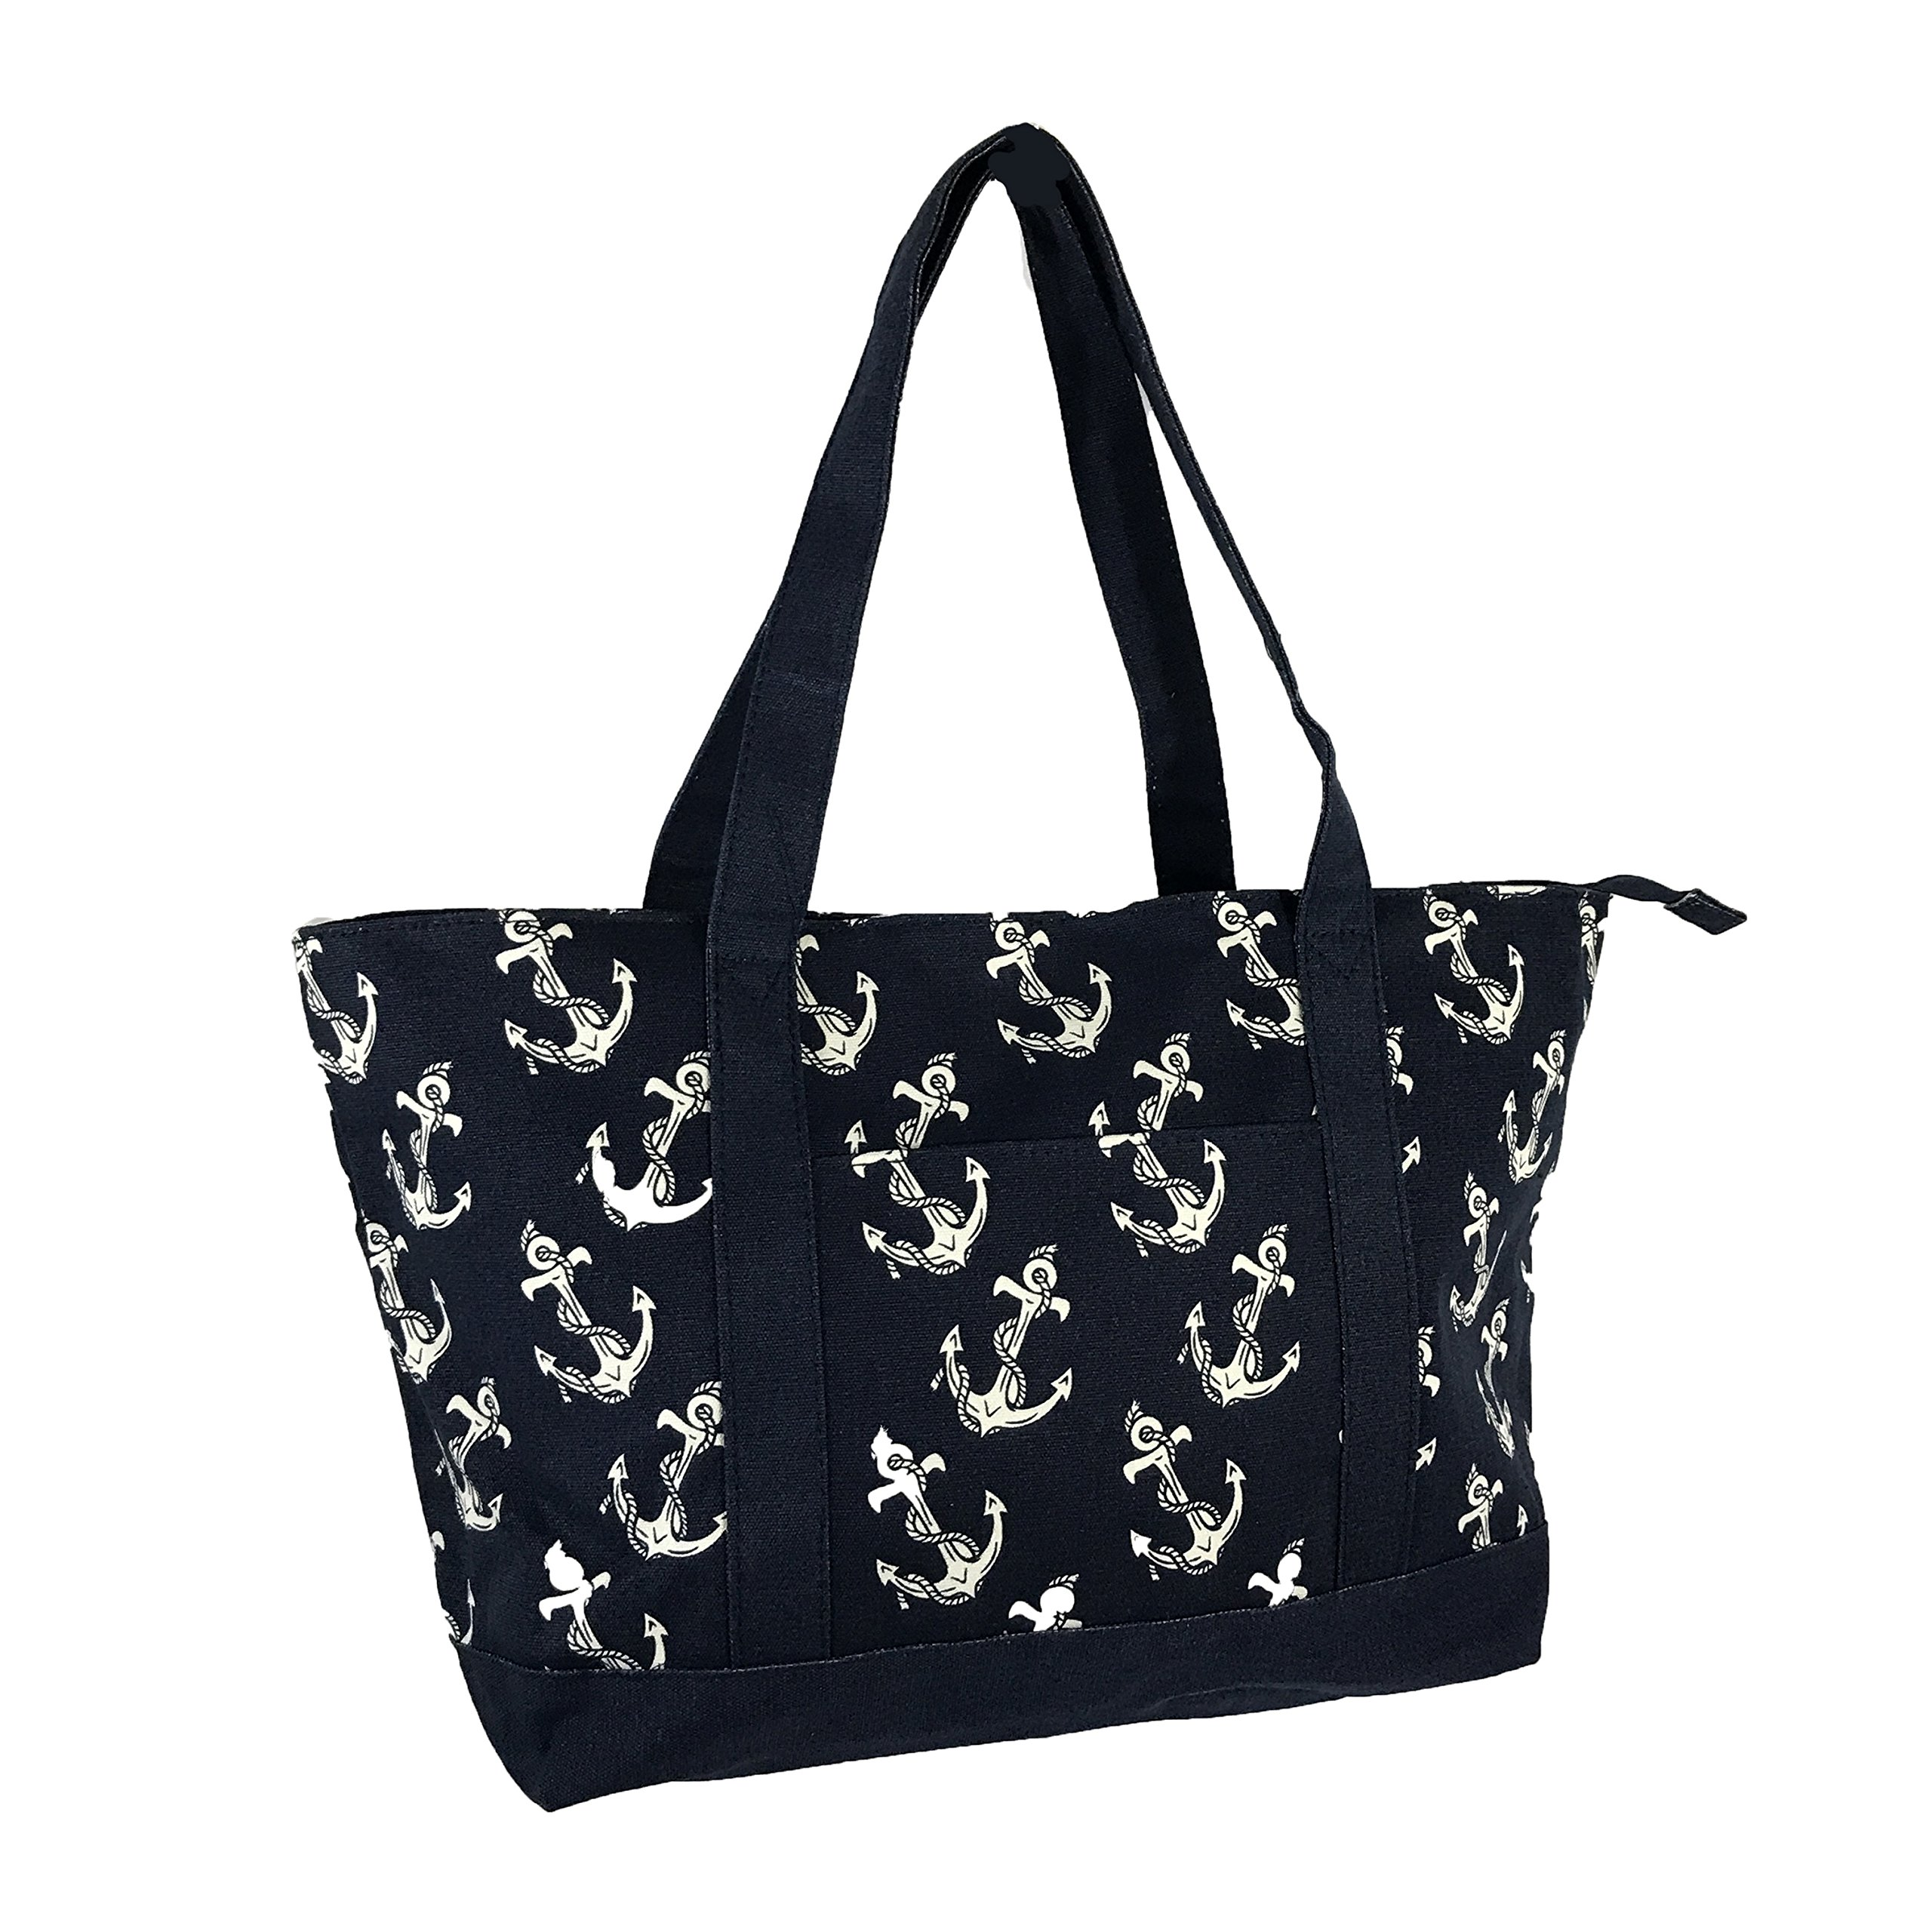 Allgala Extra Large Roomy Premium Canvas Tote Bag With Fashion Prints, Blue Anchors